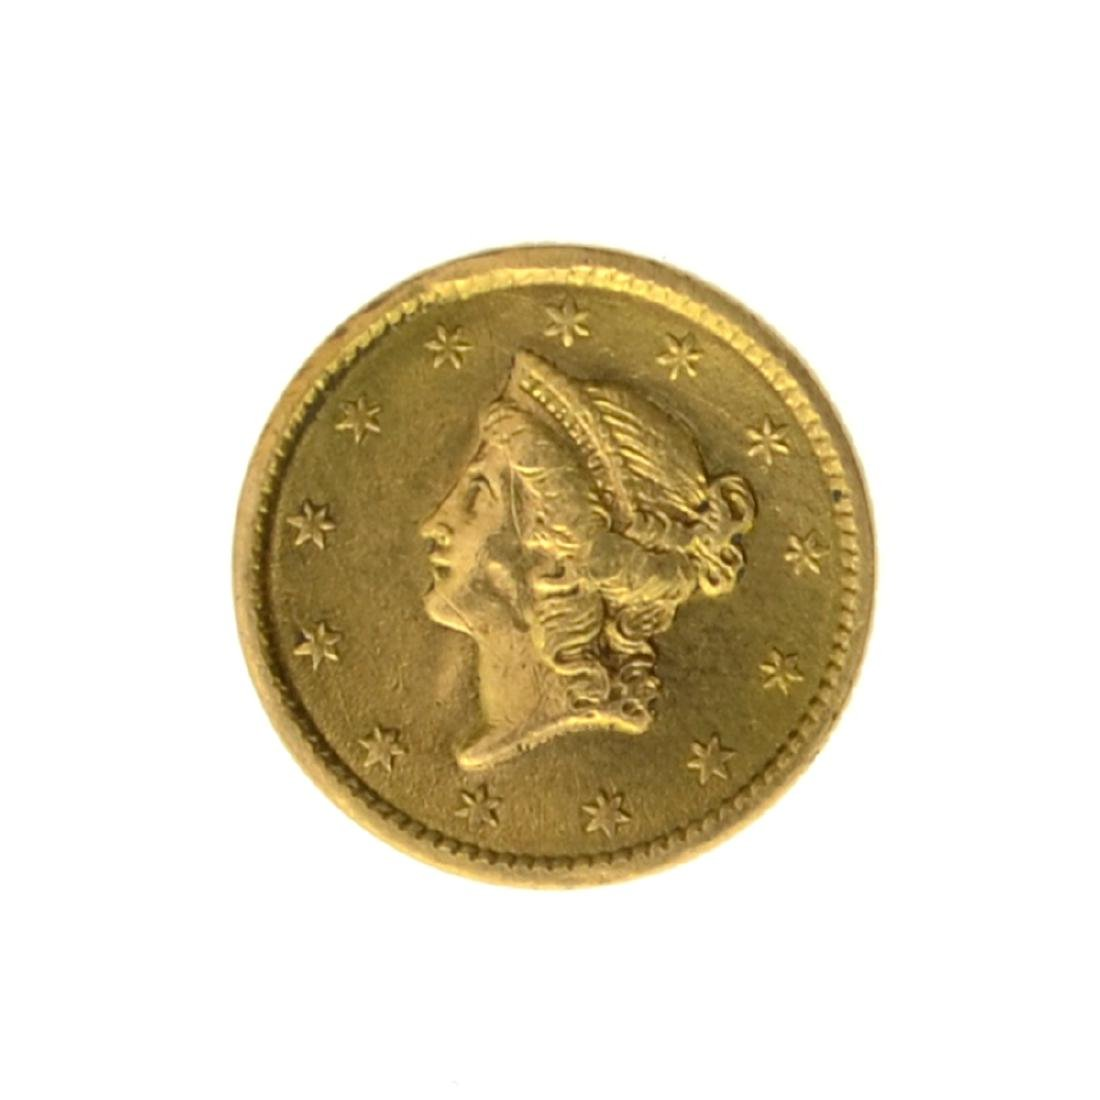 *1851 $1 U.S. Liberty Head Gold Coin - Great Investment